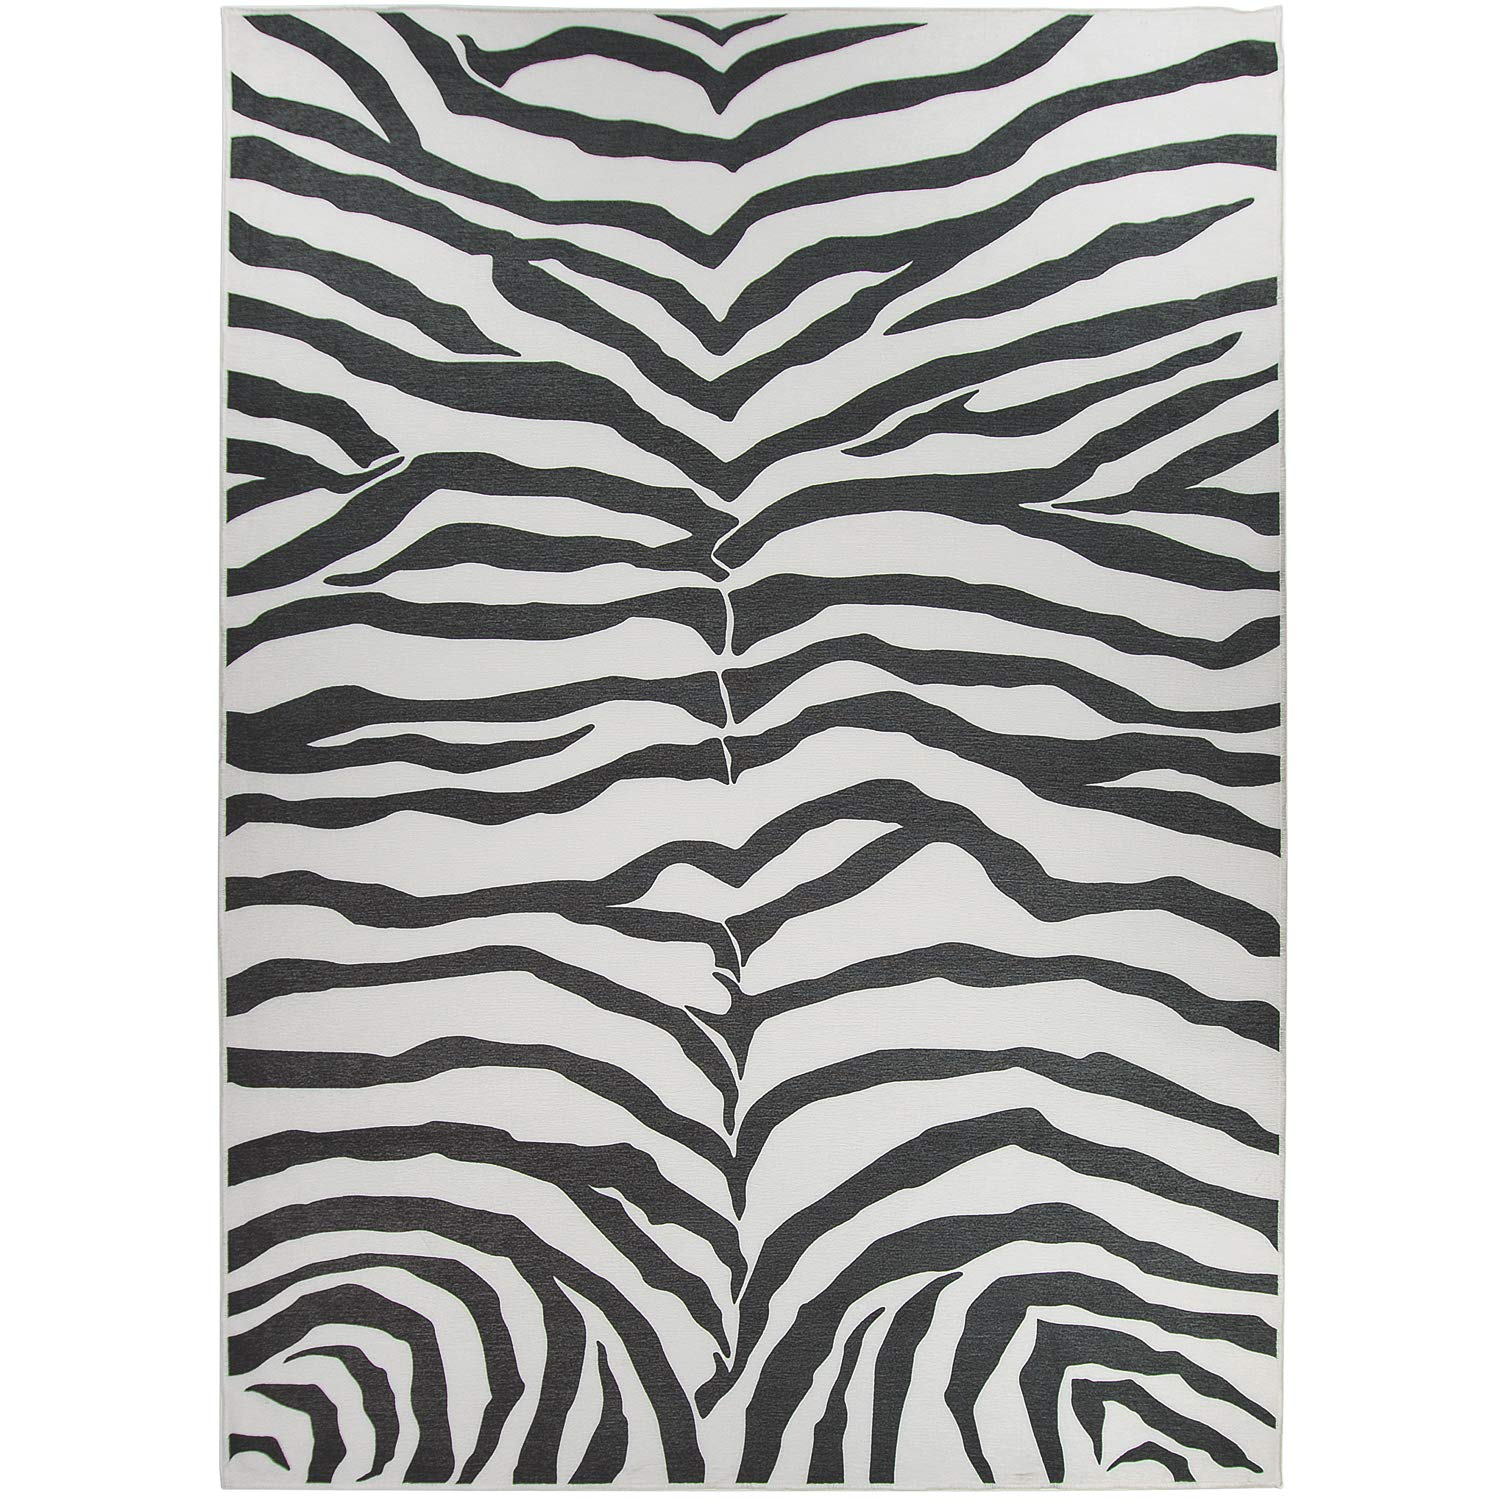 RUGGABLE Washable Stain Resistant Indoor/Outdoor, Kids, Pets, and Dog Friendly Area Rug 5'x7' Zebra Safari Black